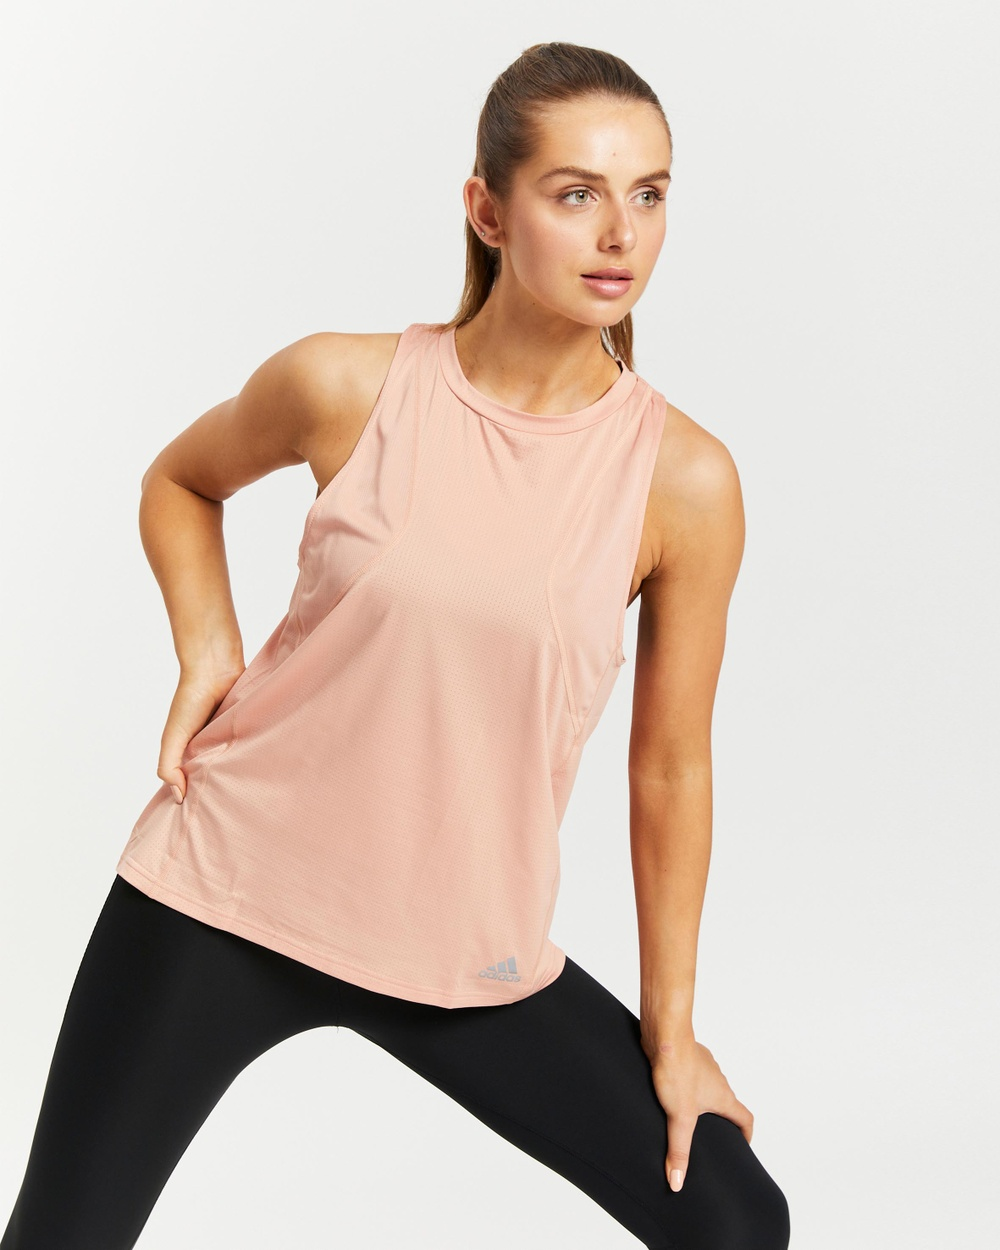 adidas Performance Own The Run Tank Top Muscle Tops Ambient Blush